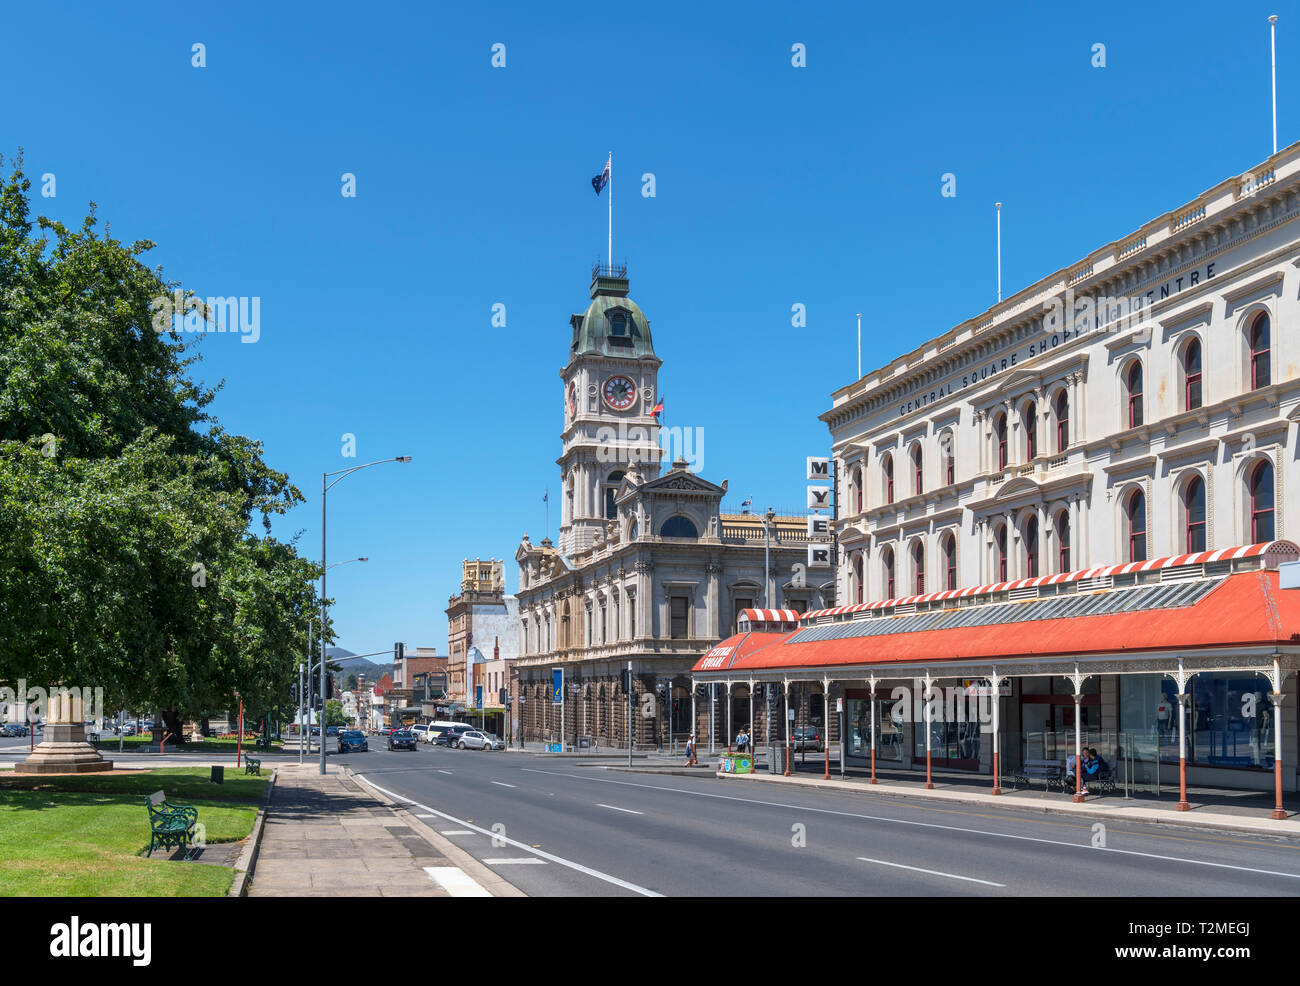 Town Hall and other historic buildings on Sturt Street, the main street in the old gold mining town of Ballarat, Victoria, Australia - Stock Image